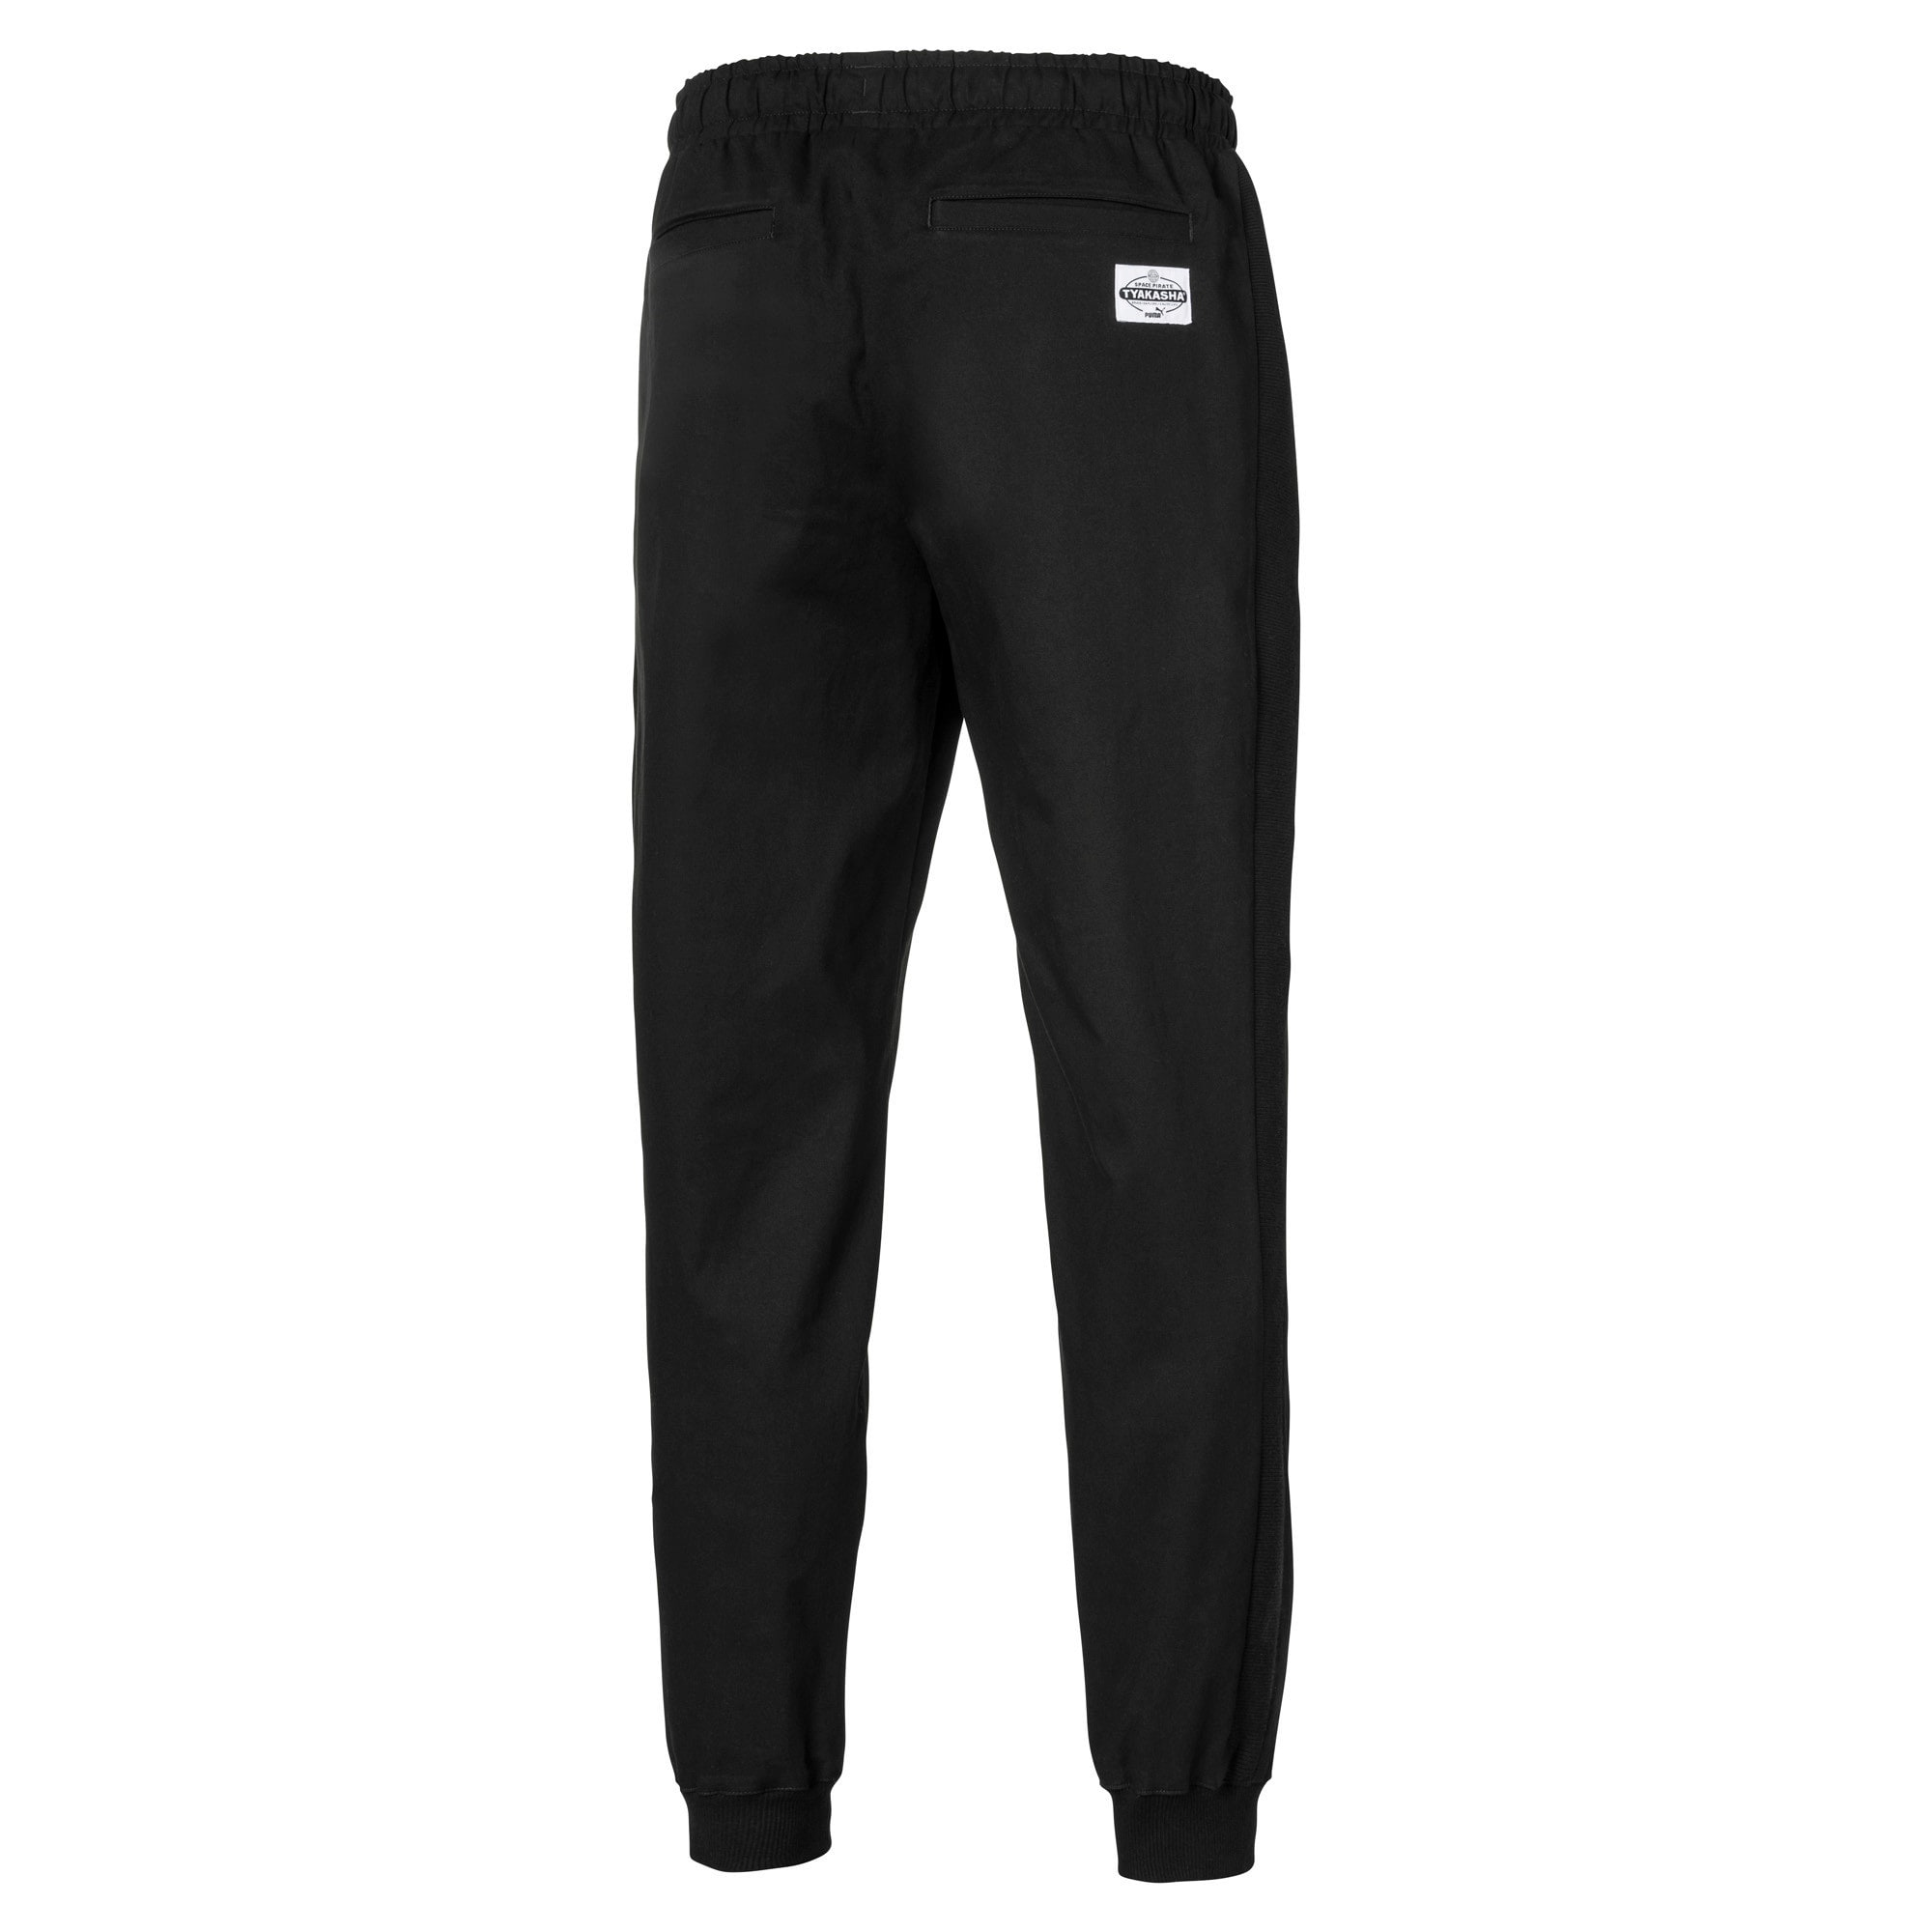 Thumbnail 5 of PUMA x TYAKASHA Herren Gewebte Hose, Cotton Black, medium